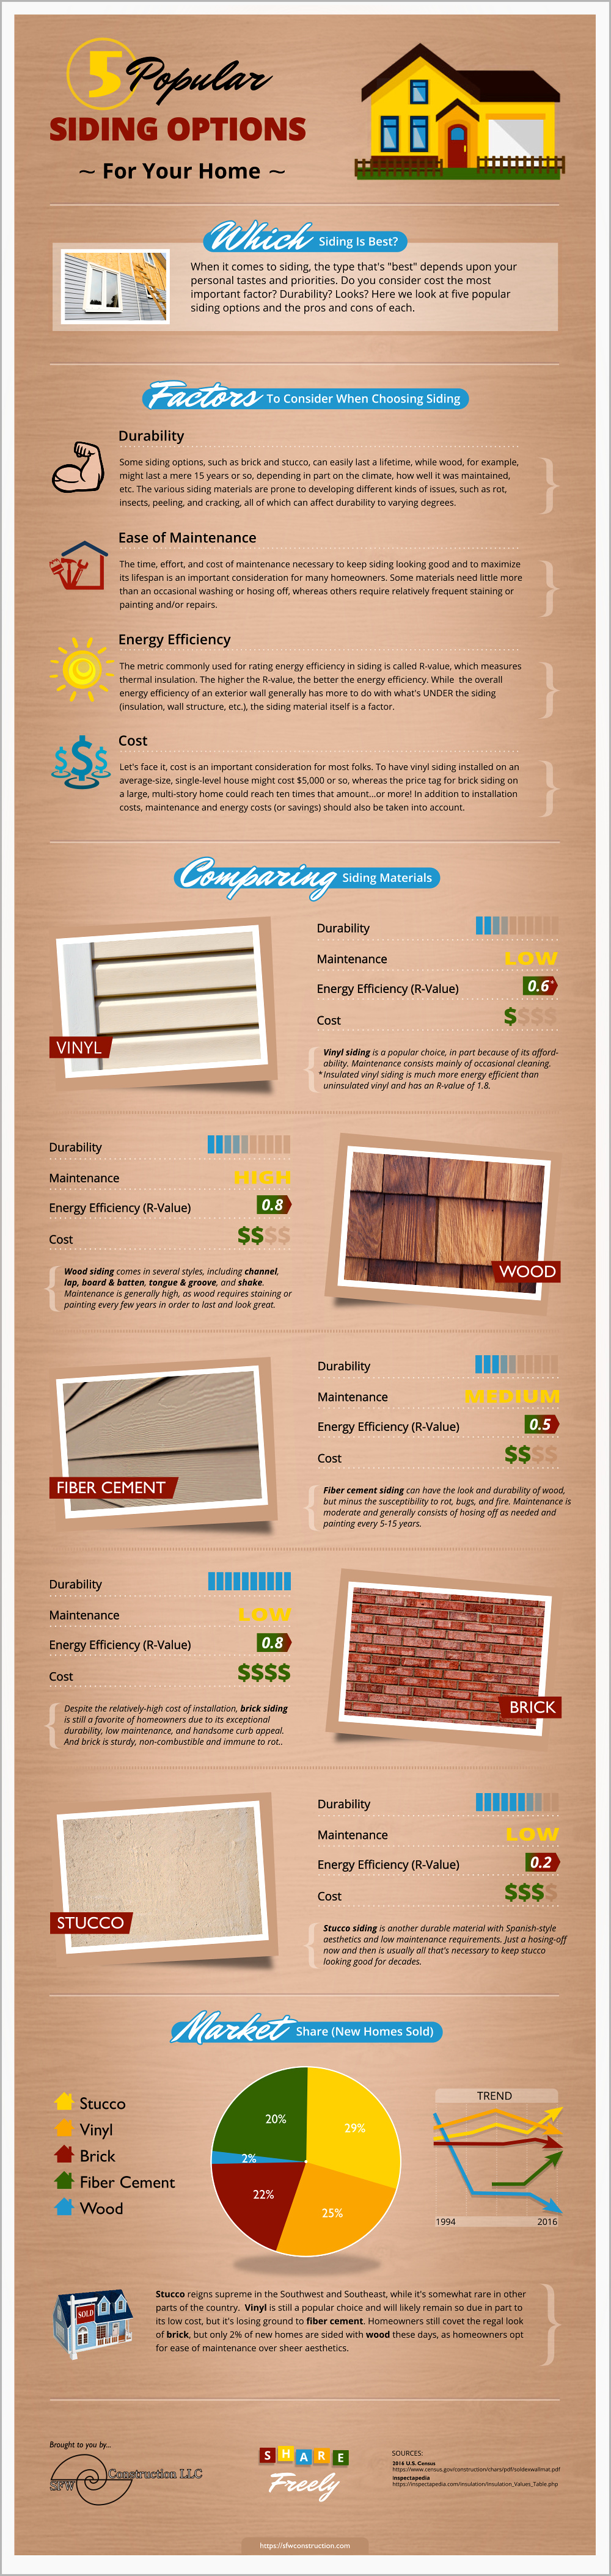 Five popular siding options for your home - Infographic